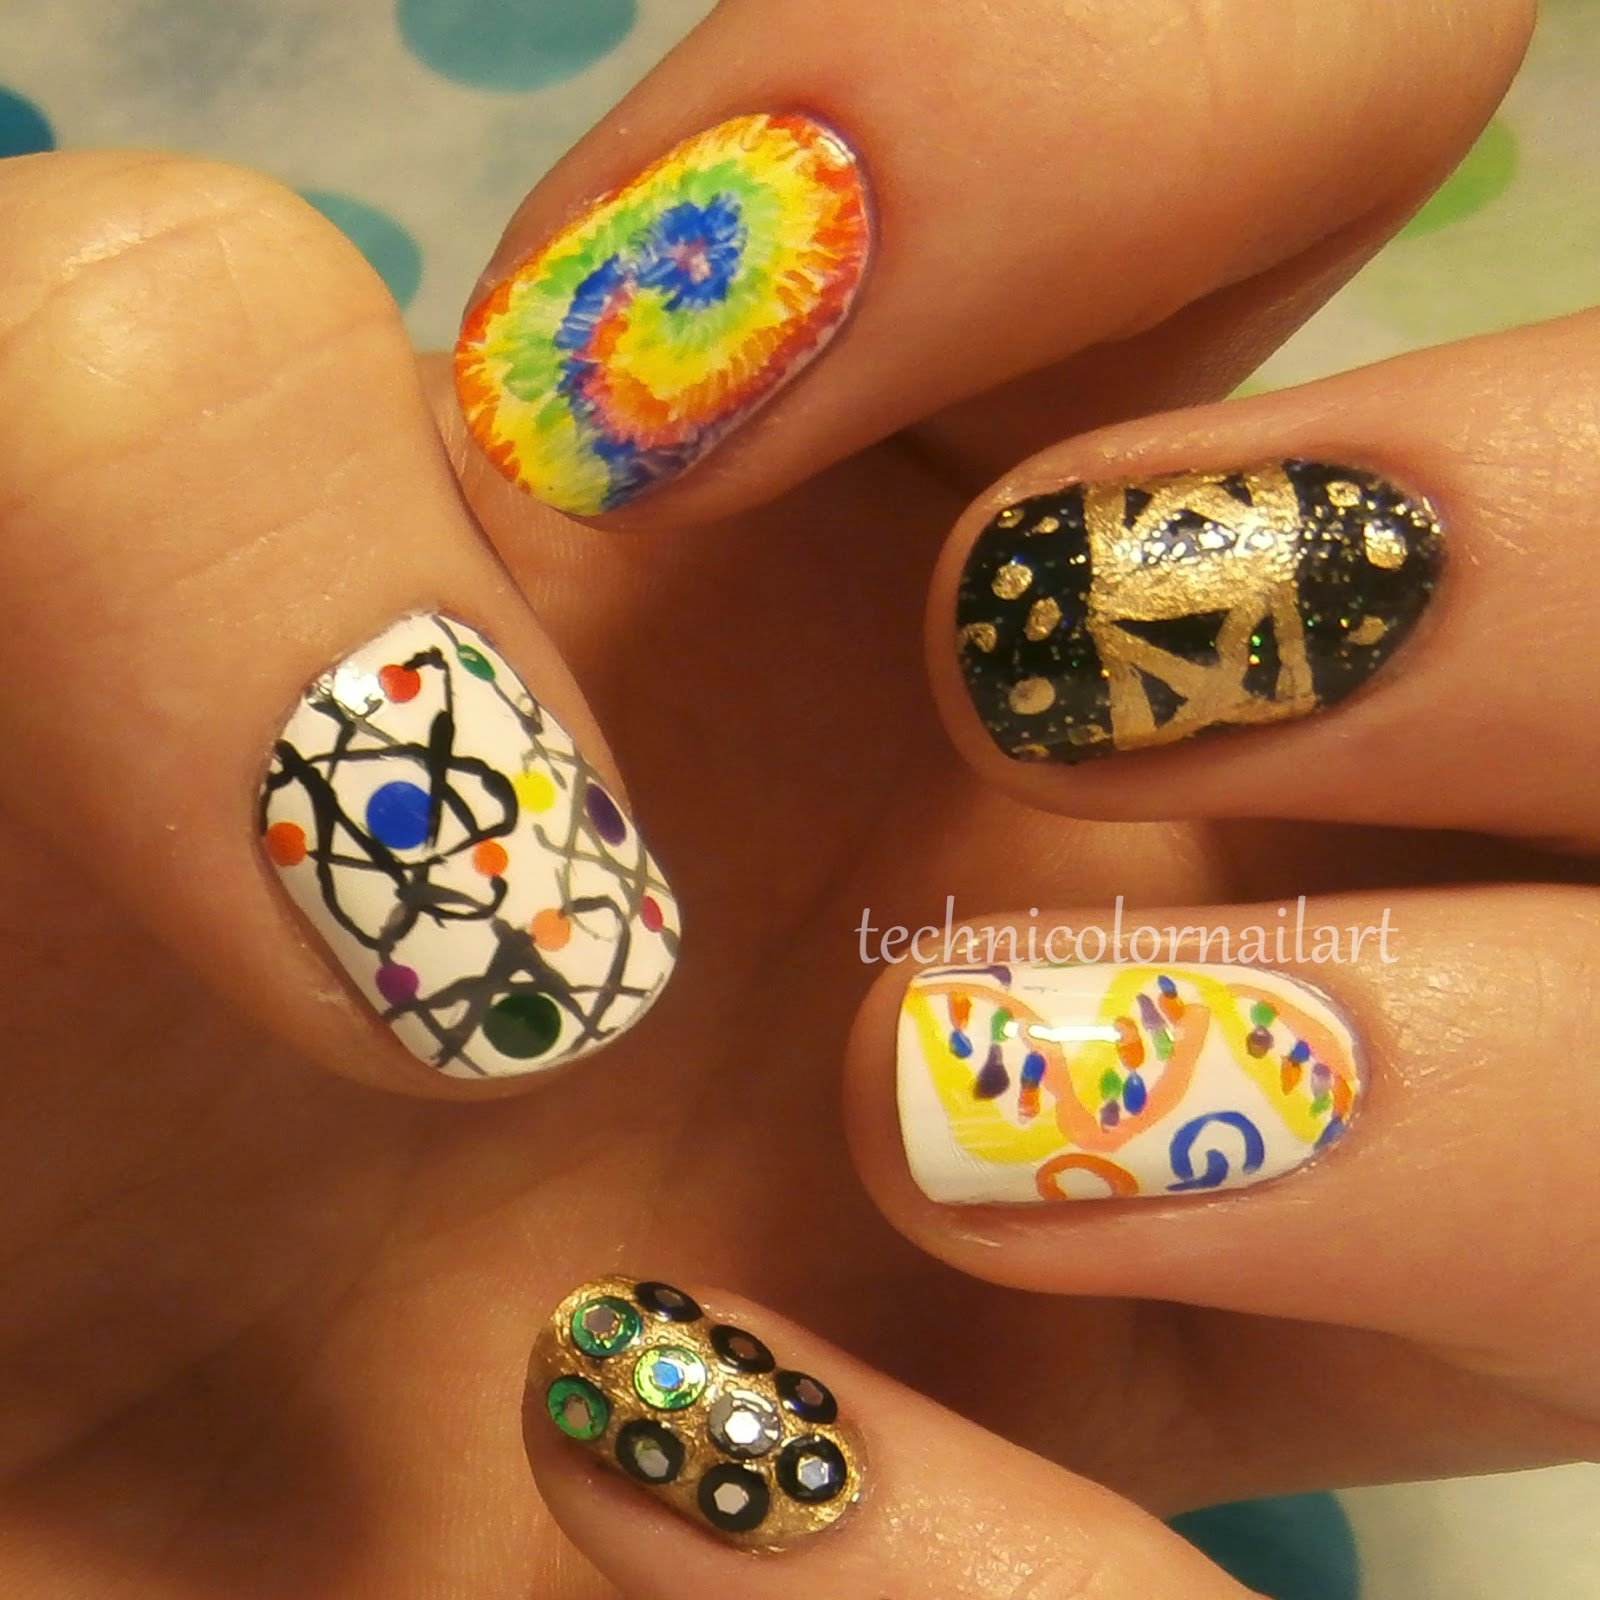 Technicolor Nail Art: March 2015